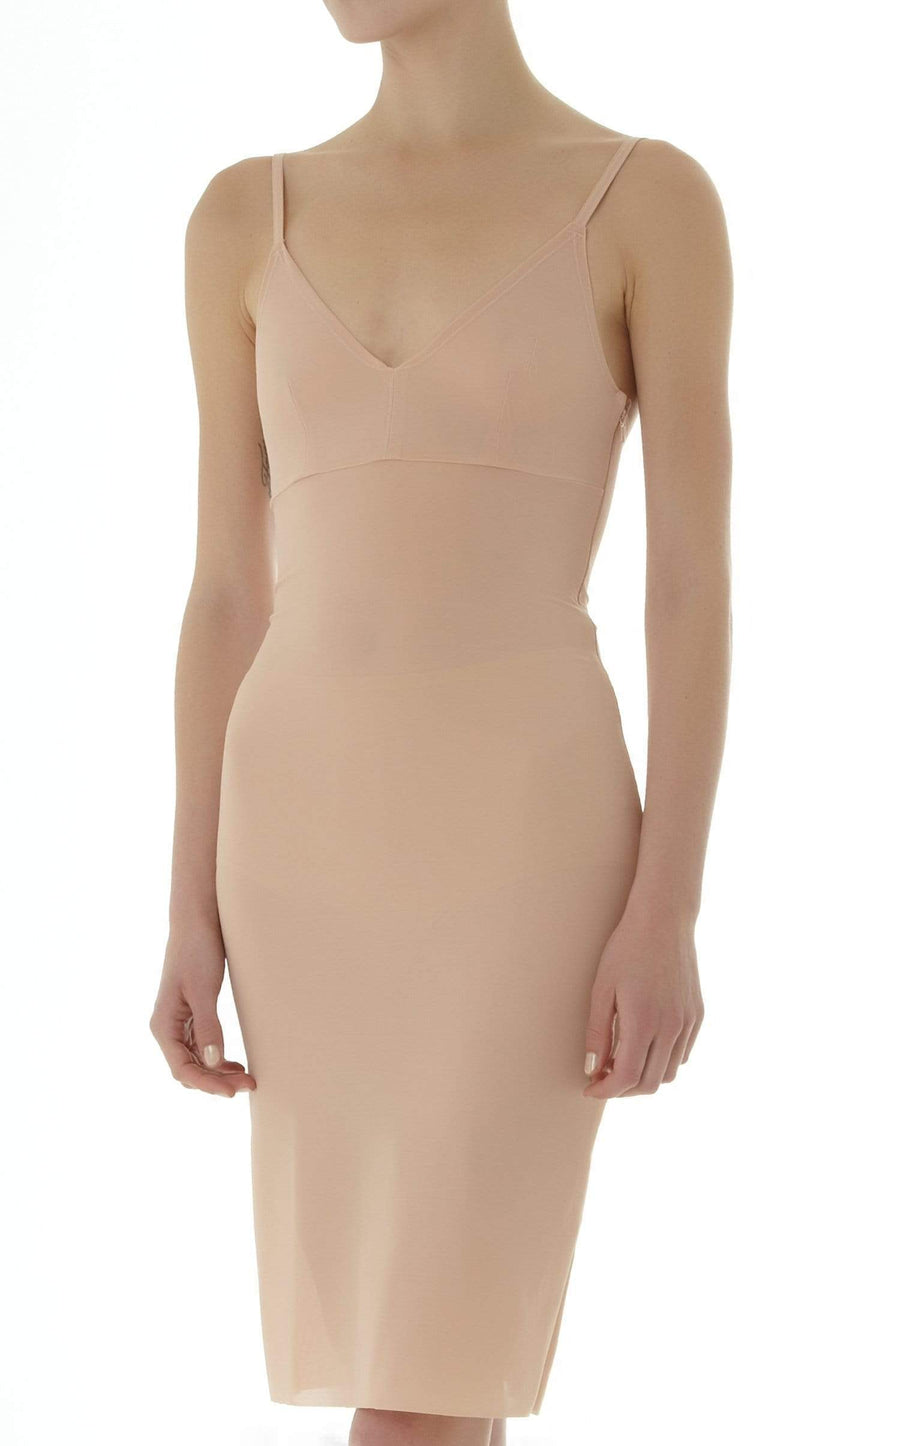 Powermesh Dress In Flesh from Roland Mouret